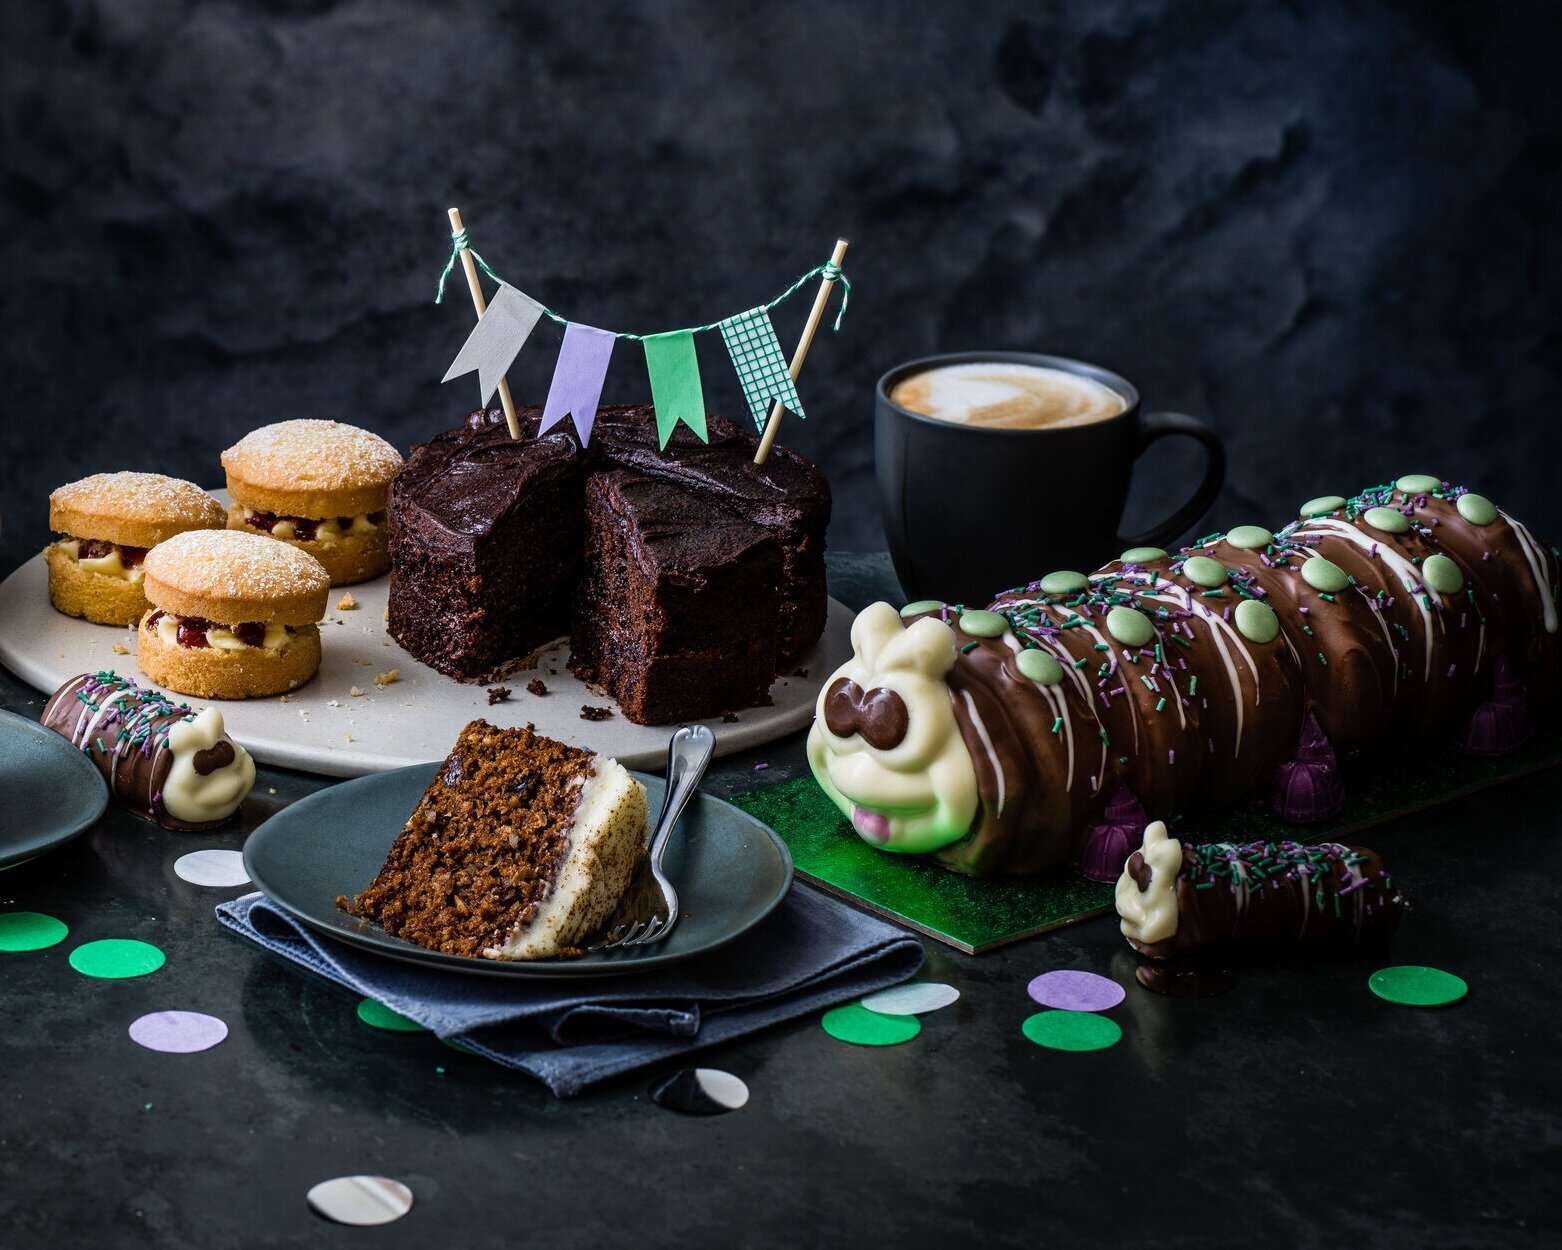 M&S Jersey to Donate 10% of All Cake Sales to Macmillan -